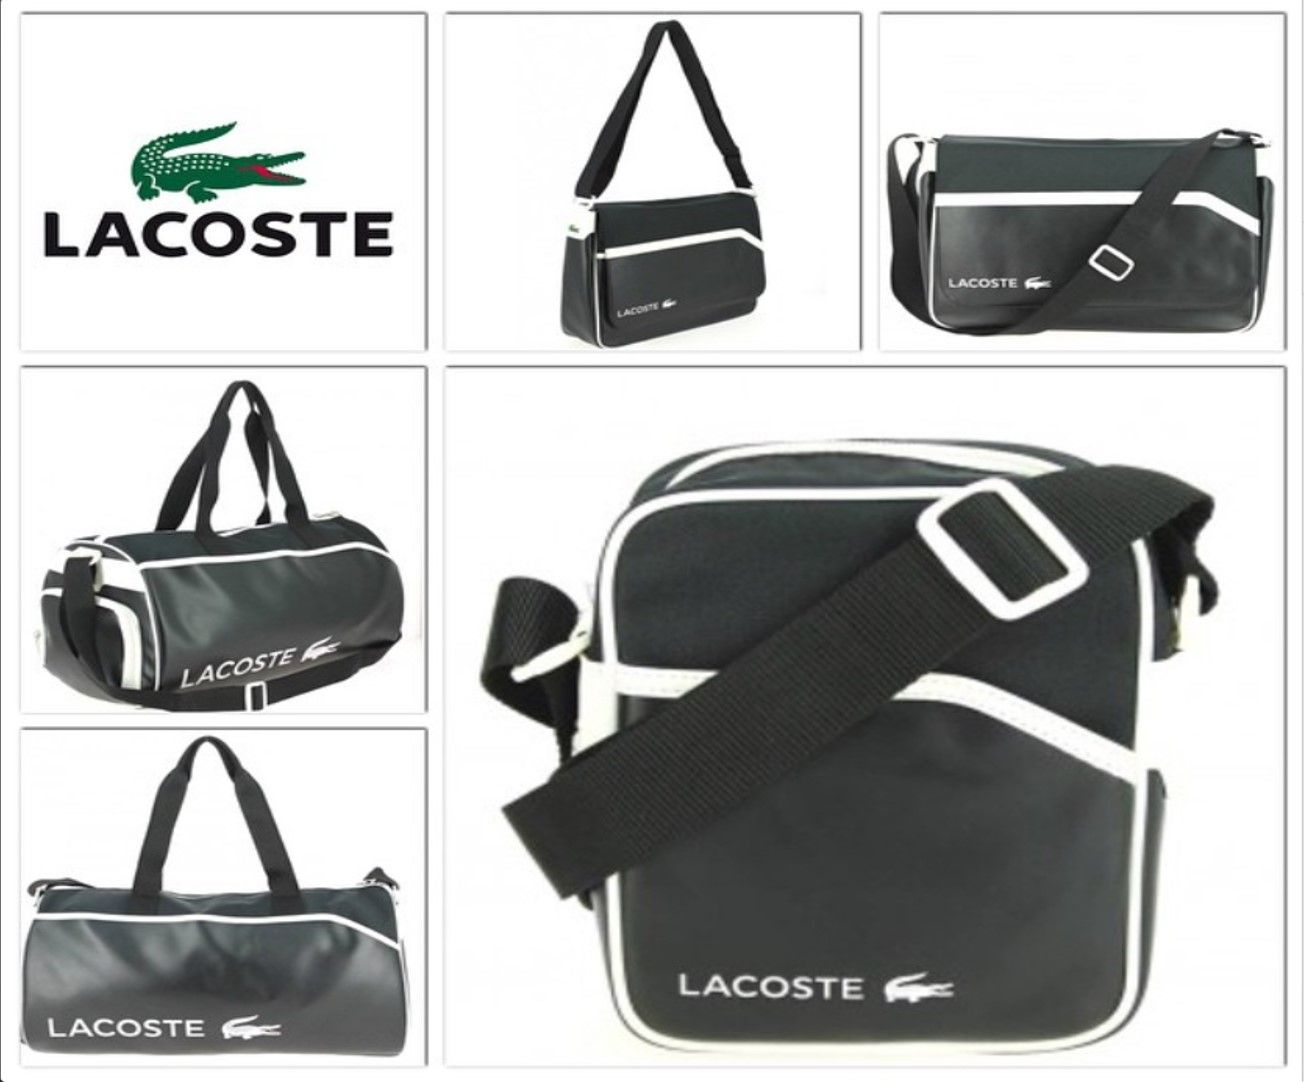 Lacoste Sport HommeCollection Pour VoyageEt Sacoche Sac De eYWE2bH9ID